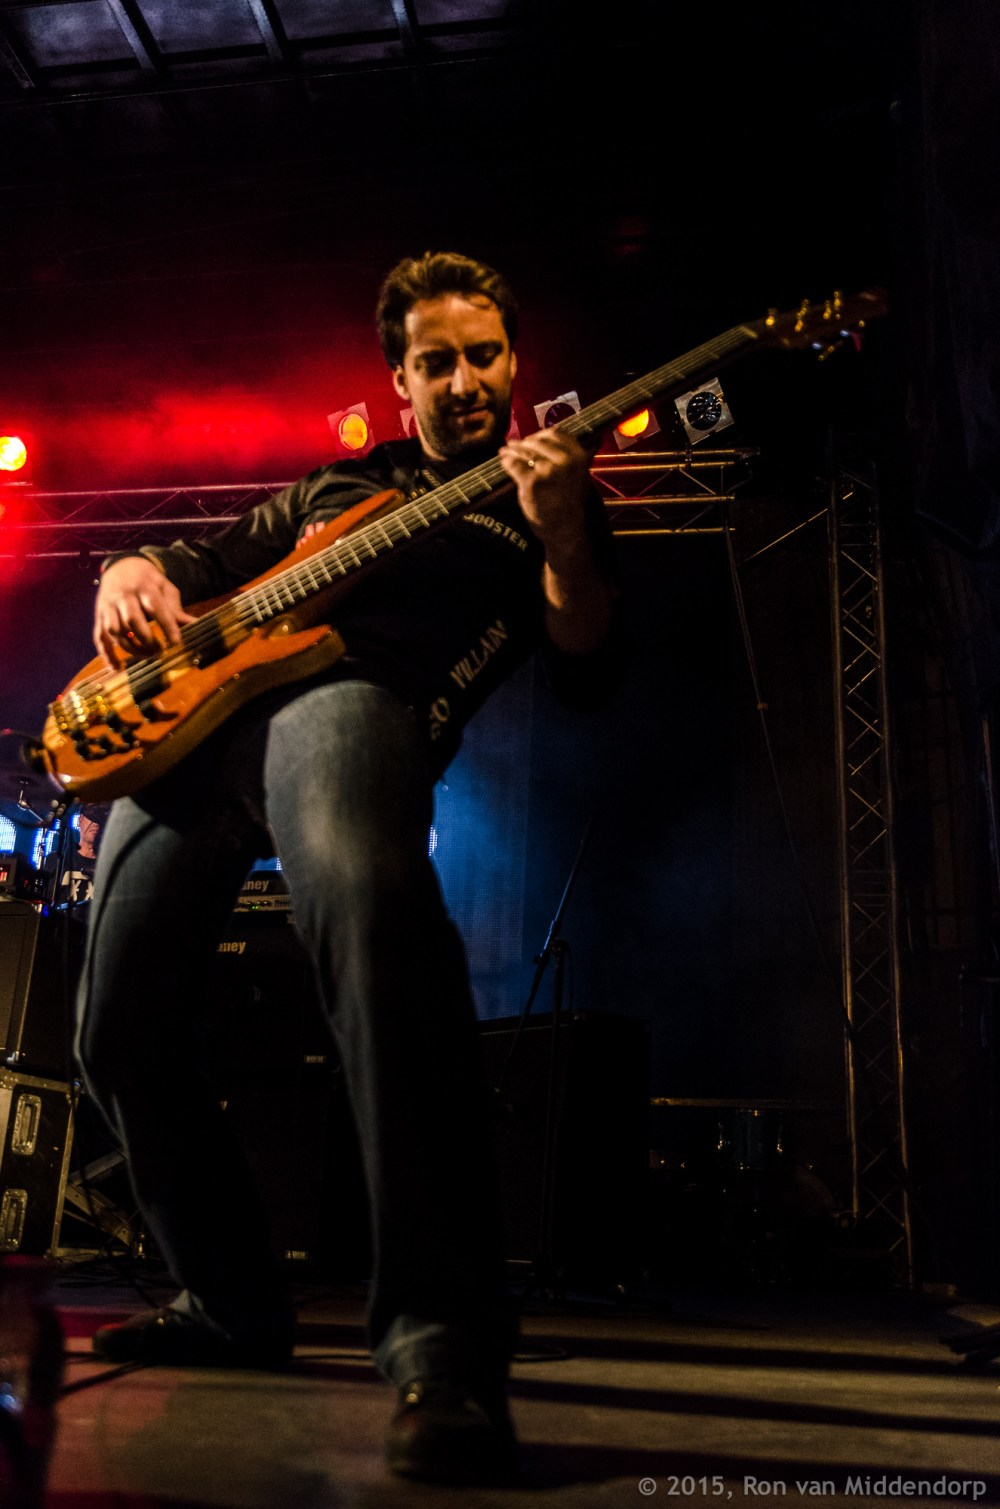 photo: Booster @ Rock in Amadora 2013